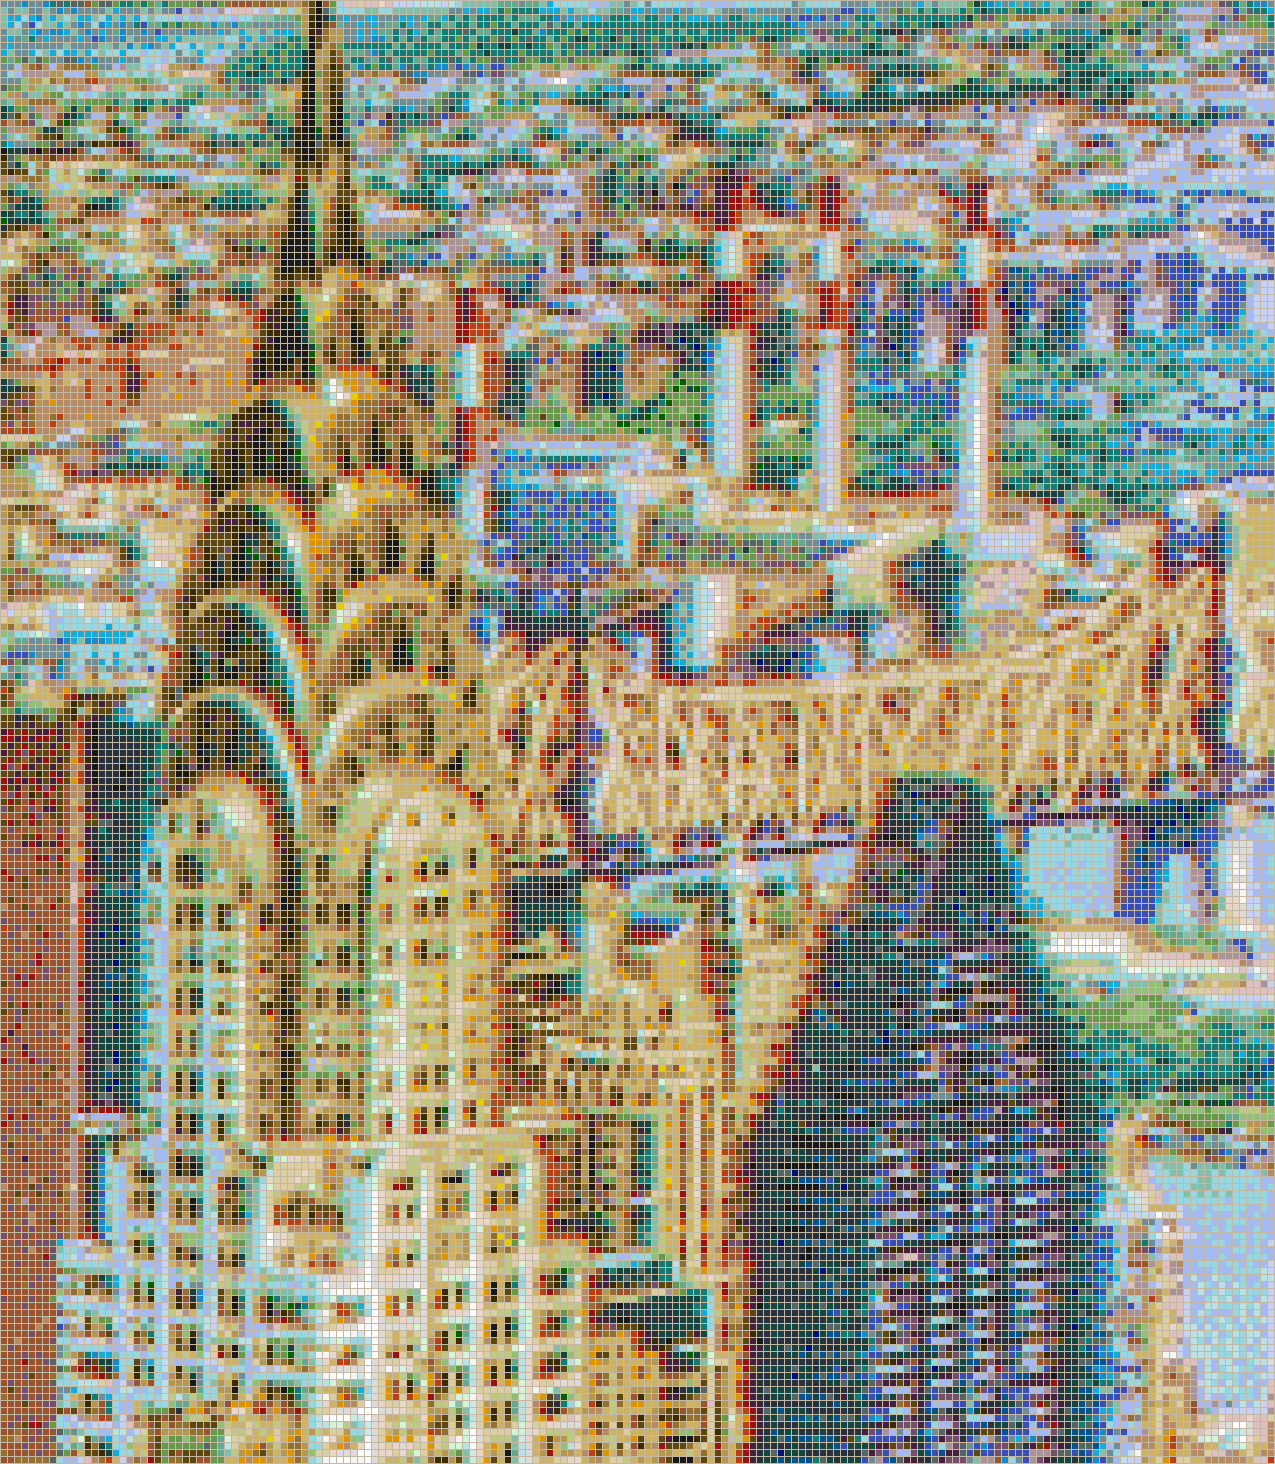 Chrysler Building from the Empire State - Mosaic Tile Picture Art